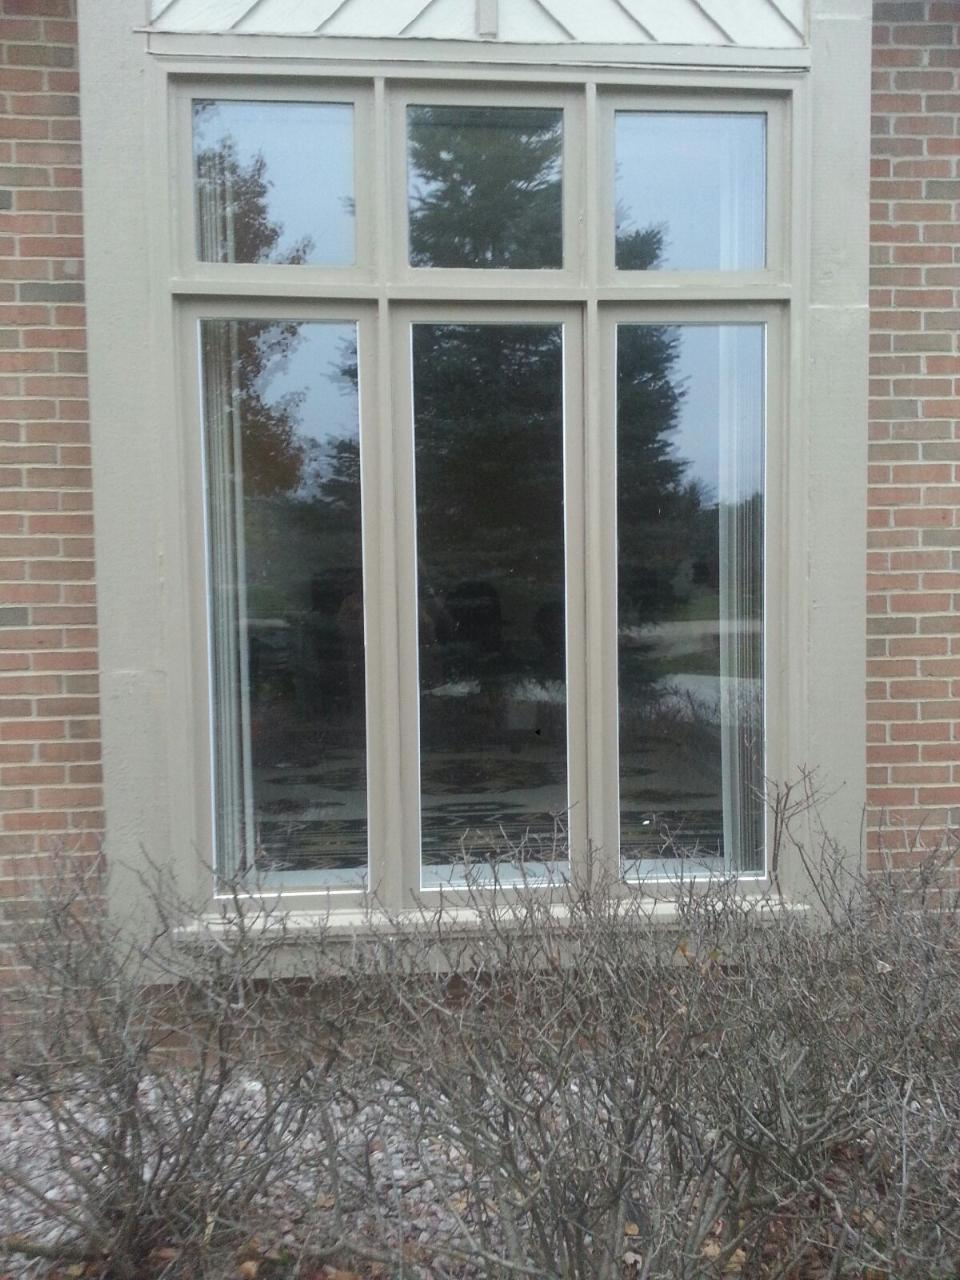 Aruba window repair and home improvement in sterling for Home window replacement